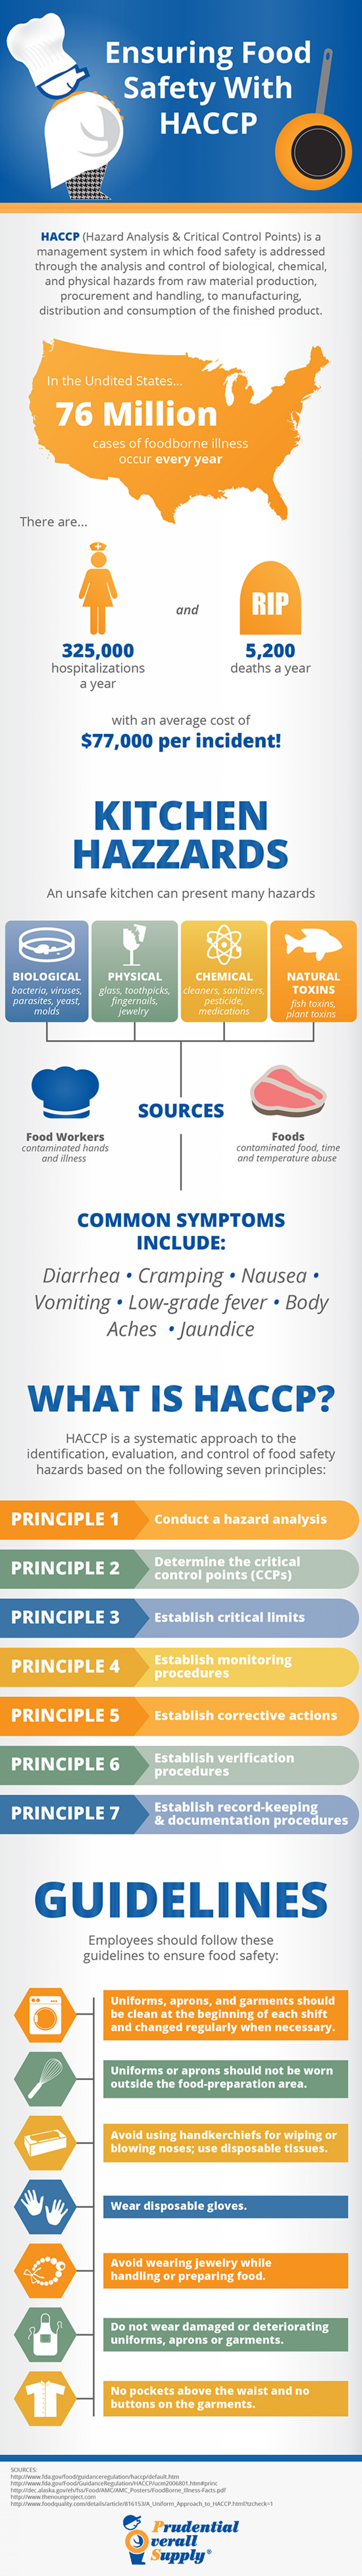 Ensuring Food Safety With HACCP Infographic